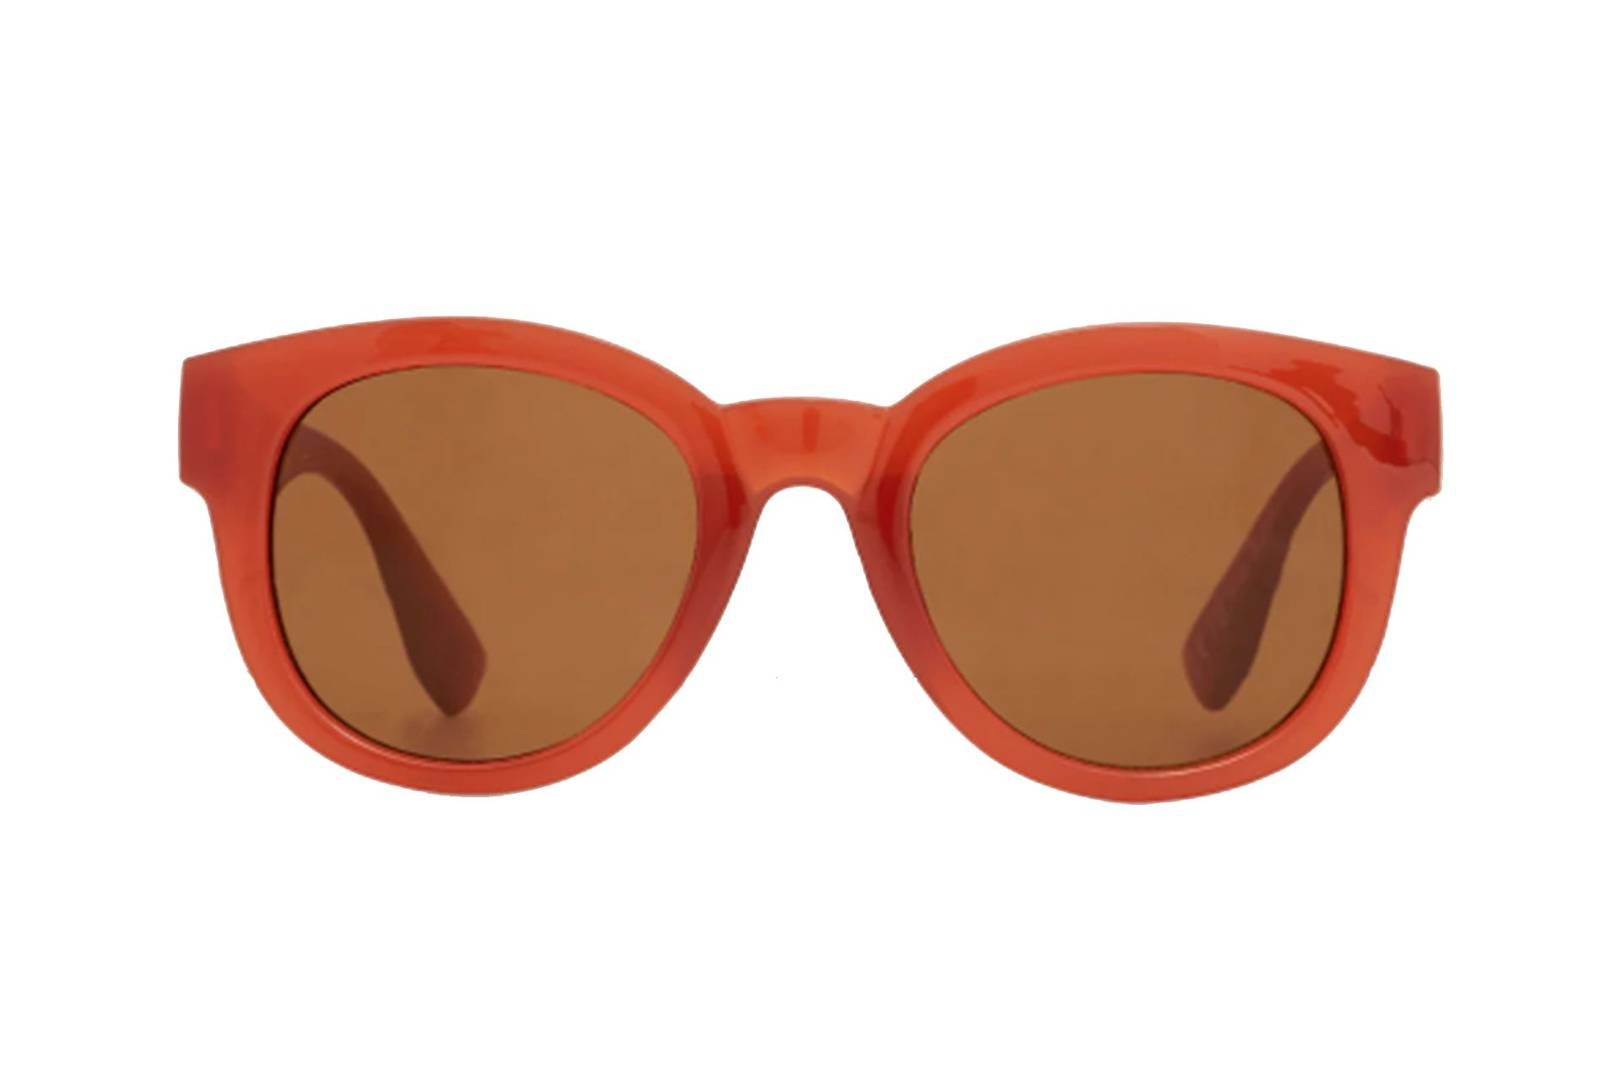 Tinted sunglasses and coloured shades trend  rose 54cd38f3a9bd